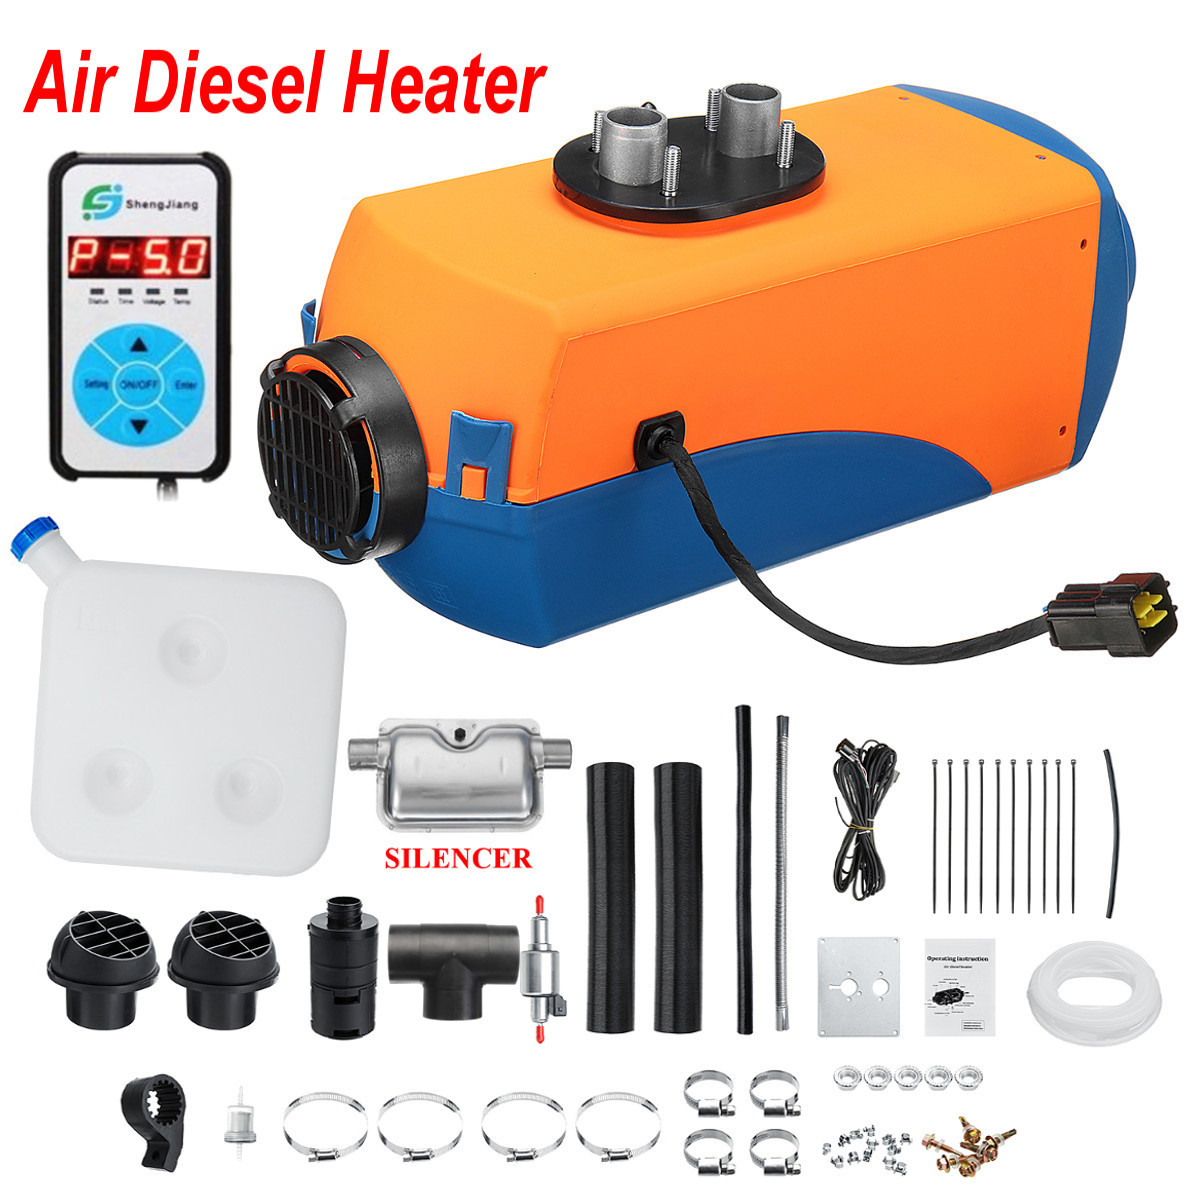 12V 5KW Diesels Air Parking Heater Digital Display Parking Heater with Free Silencer For Trucks Boats Bus Car Trailer Heater12V 5KW Diesels Air Parking Heater Digital Display Parking Heater with Free Silencer For Trucks Boats Bus Car Trailer Heater